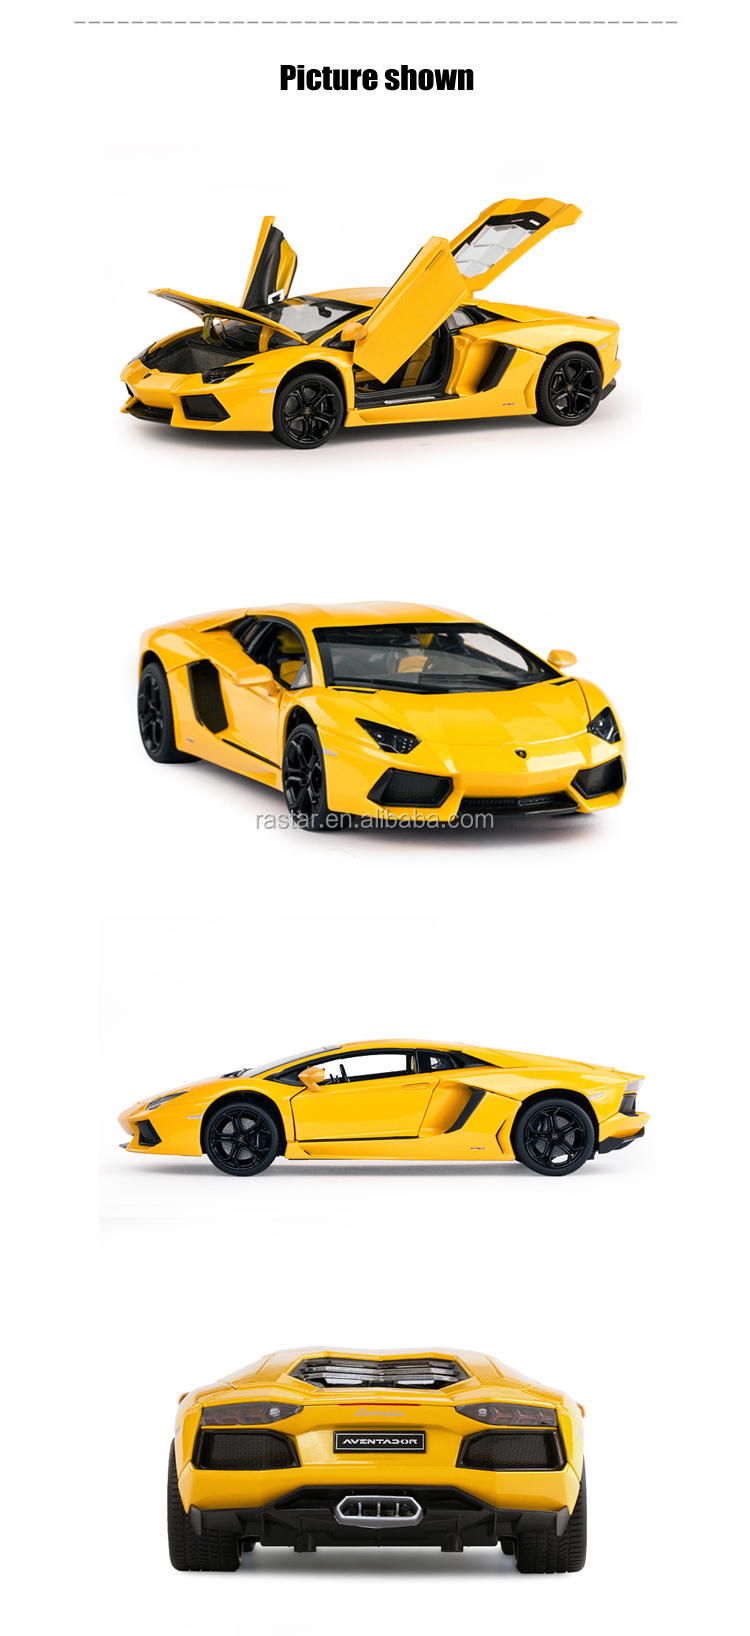 Rastar new products 1:18 scale car model diecast car